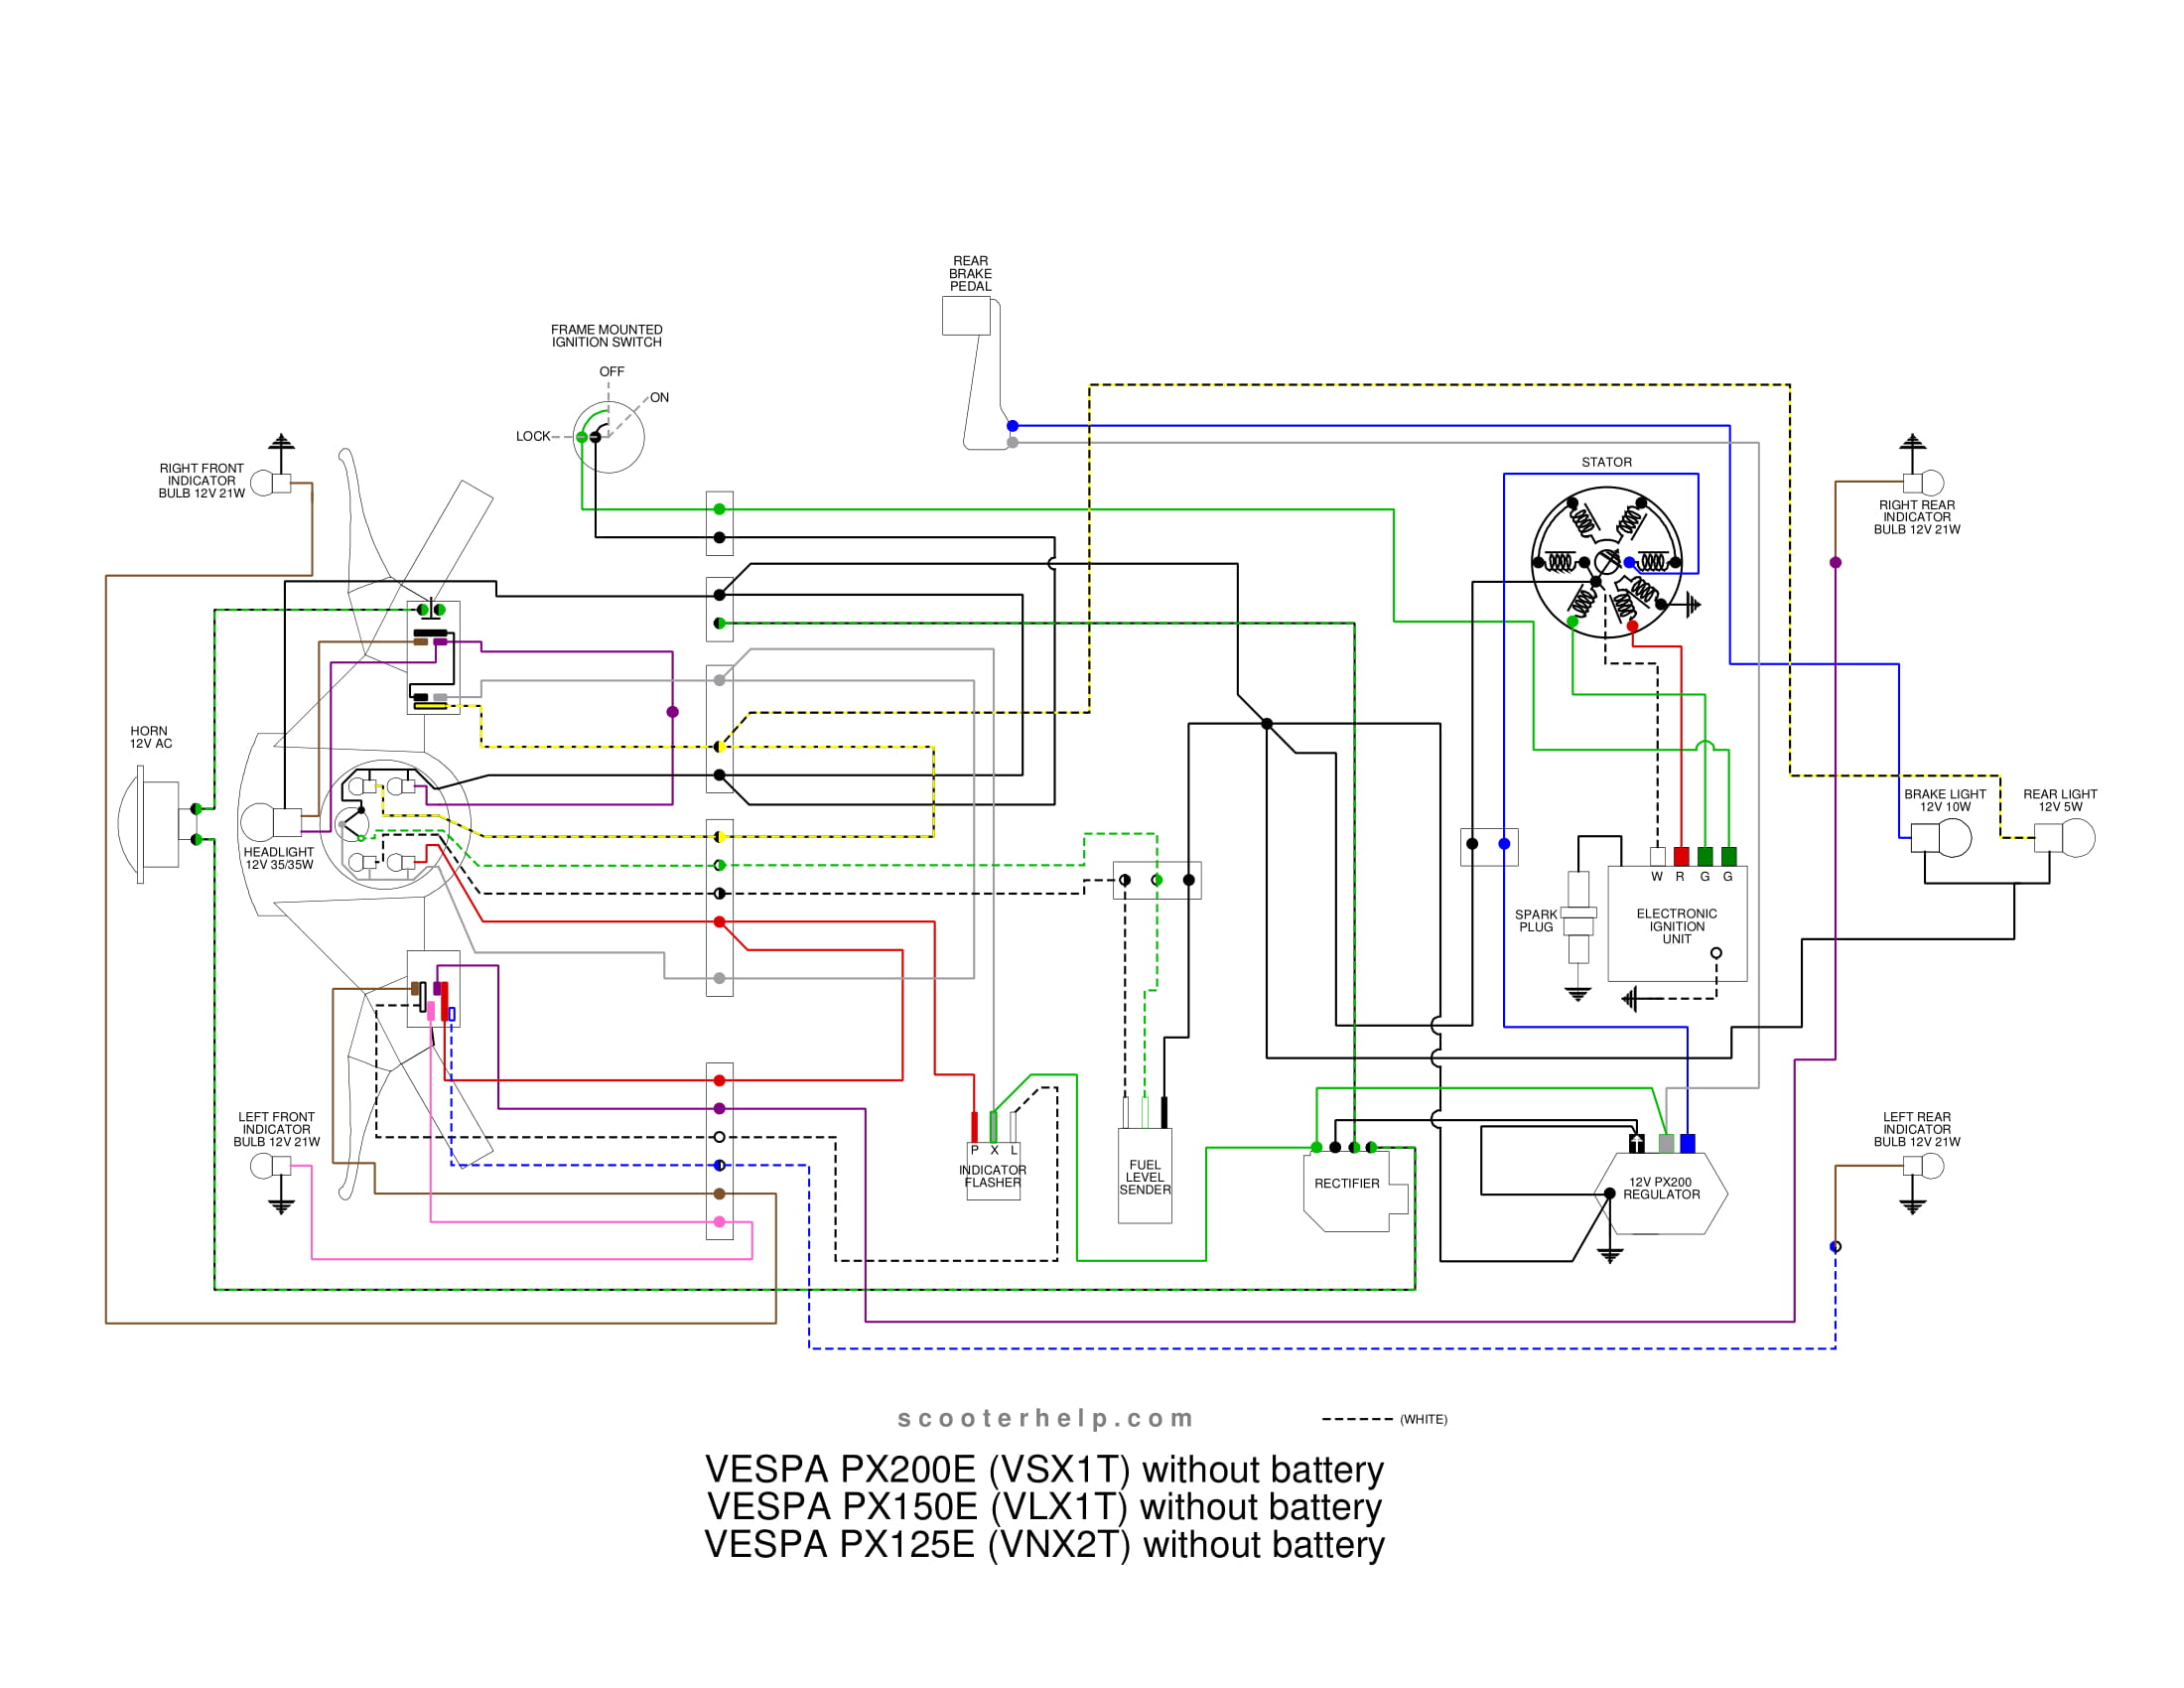 VSX1T.px200e.nobatt scooter help px125e (vnx2t) vespa p125x wiring diagram at aneh.co